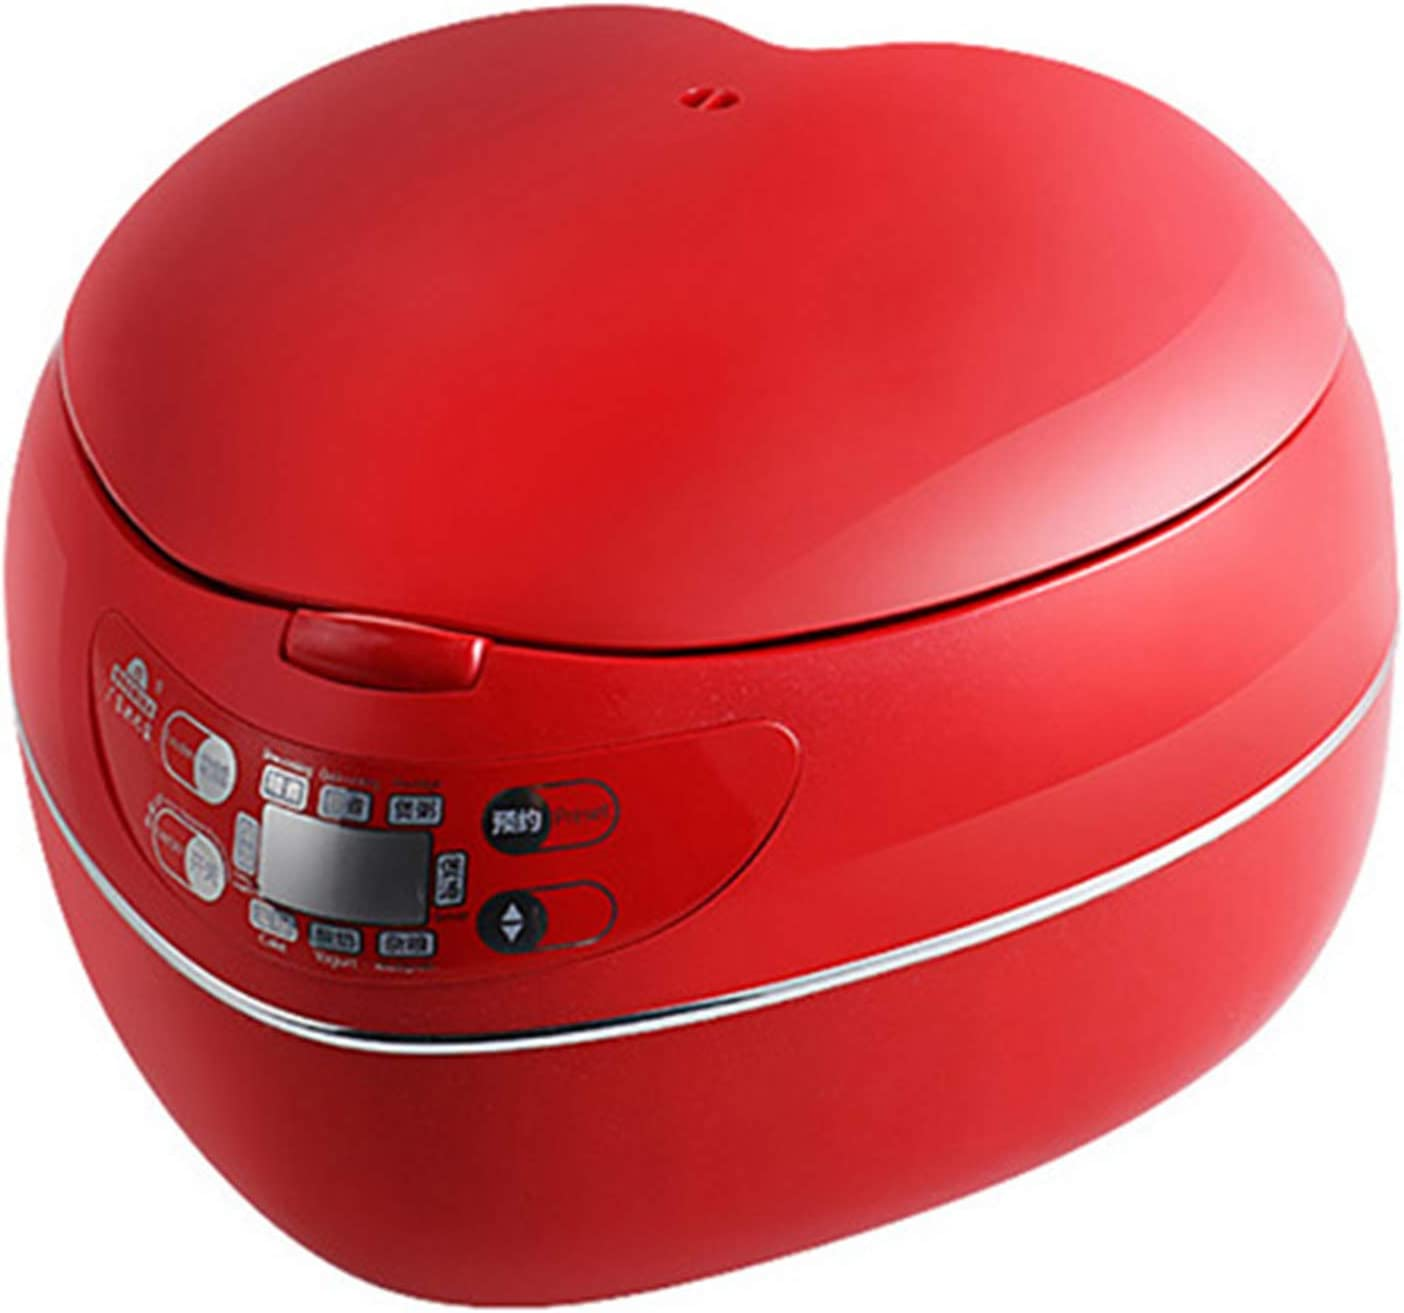 ZYQDRZ Peach Heart-Shaped Now on sale Don't miss the campaign Rice 300W 1 Smart Cooker